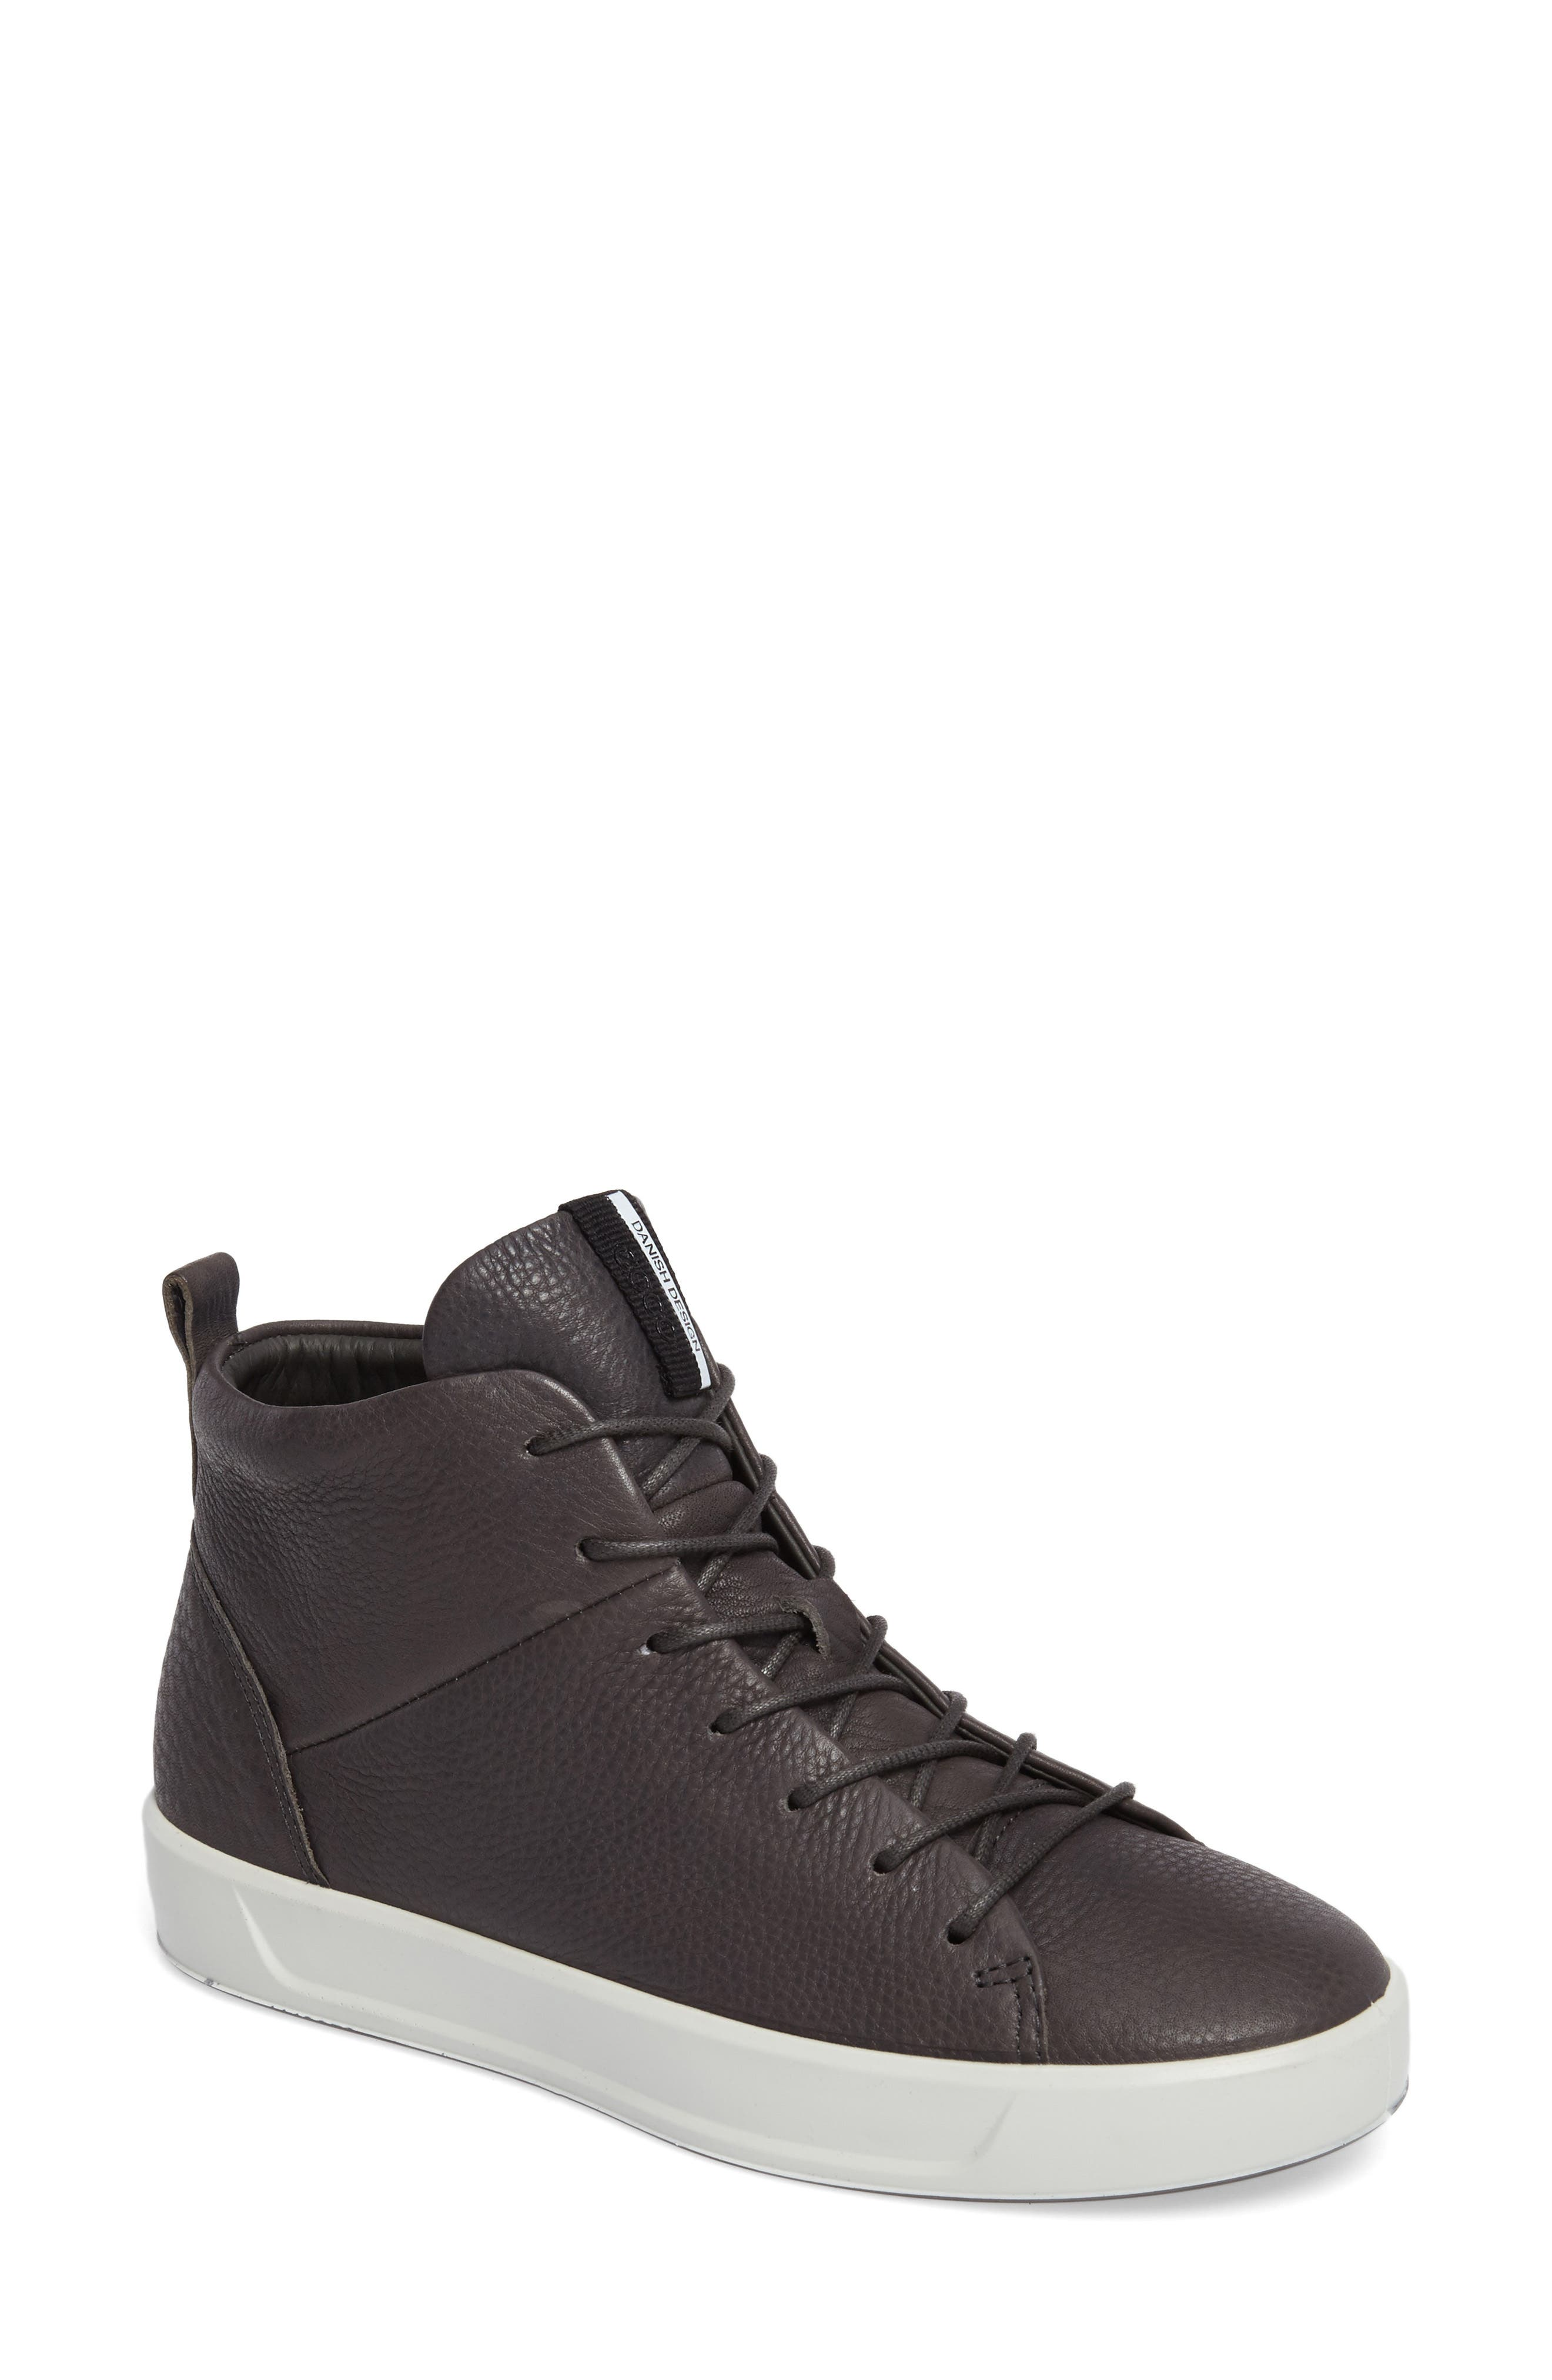 Soft 8 High Top Sneaker,                         Main,                         color, Dark Shadow Leather